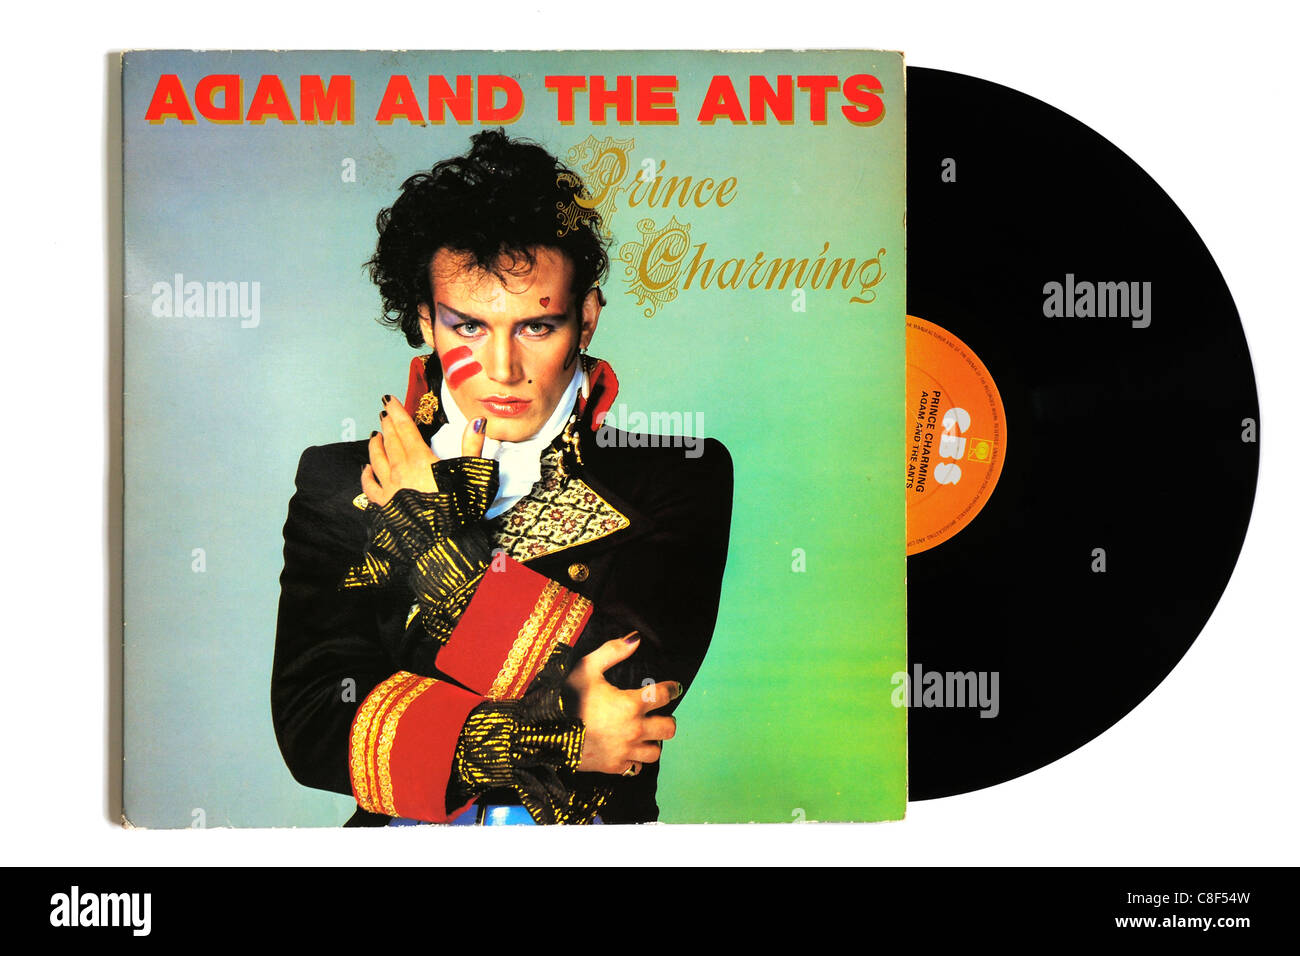 Adam and the Ants Prince Charming album - Stock Image